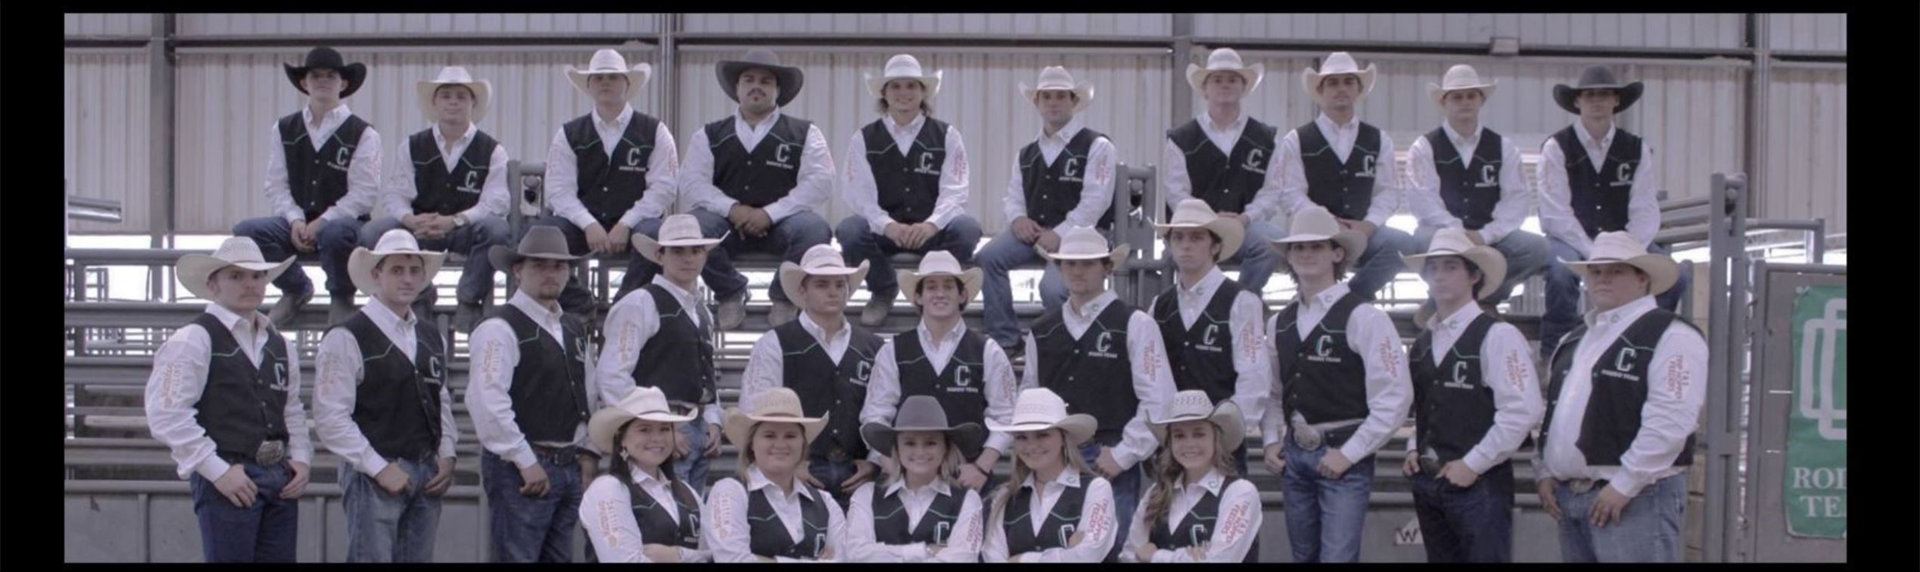 Clarendon College 2019-2020 Rodeo Team